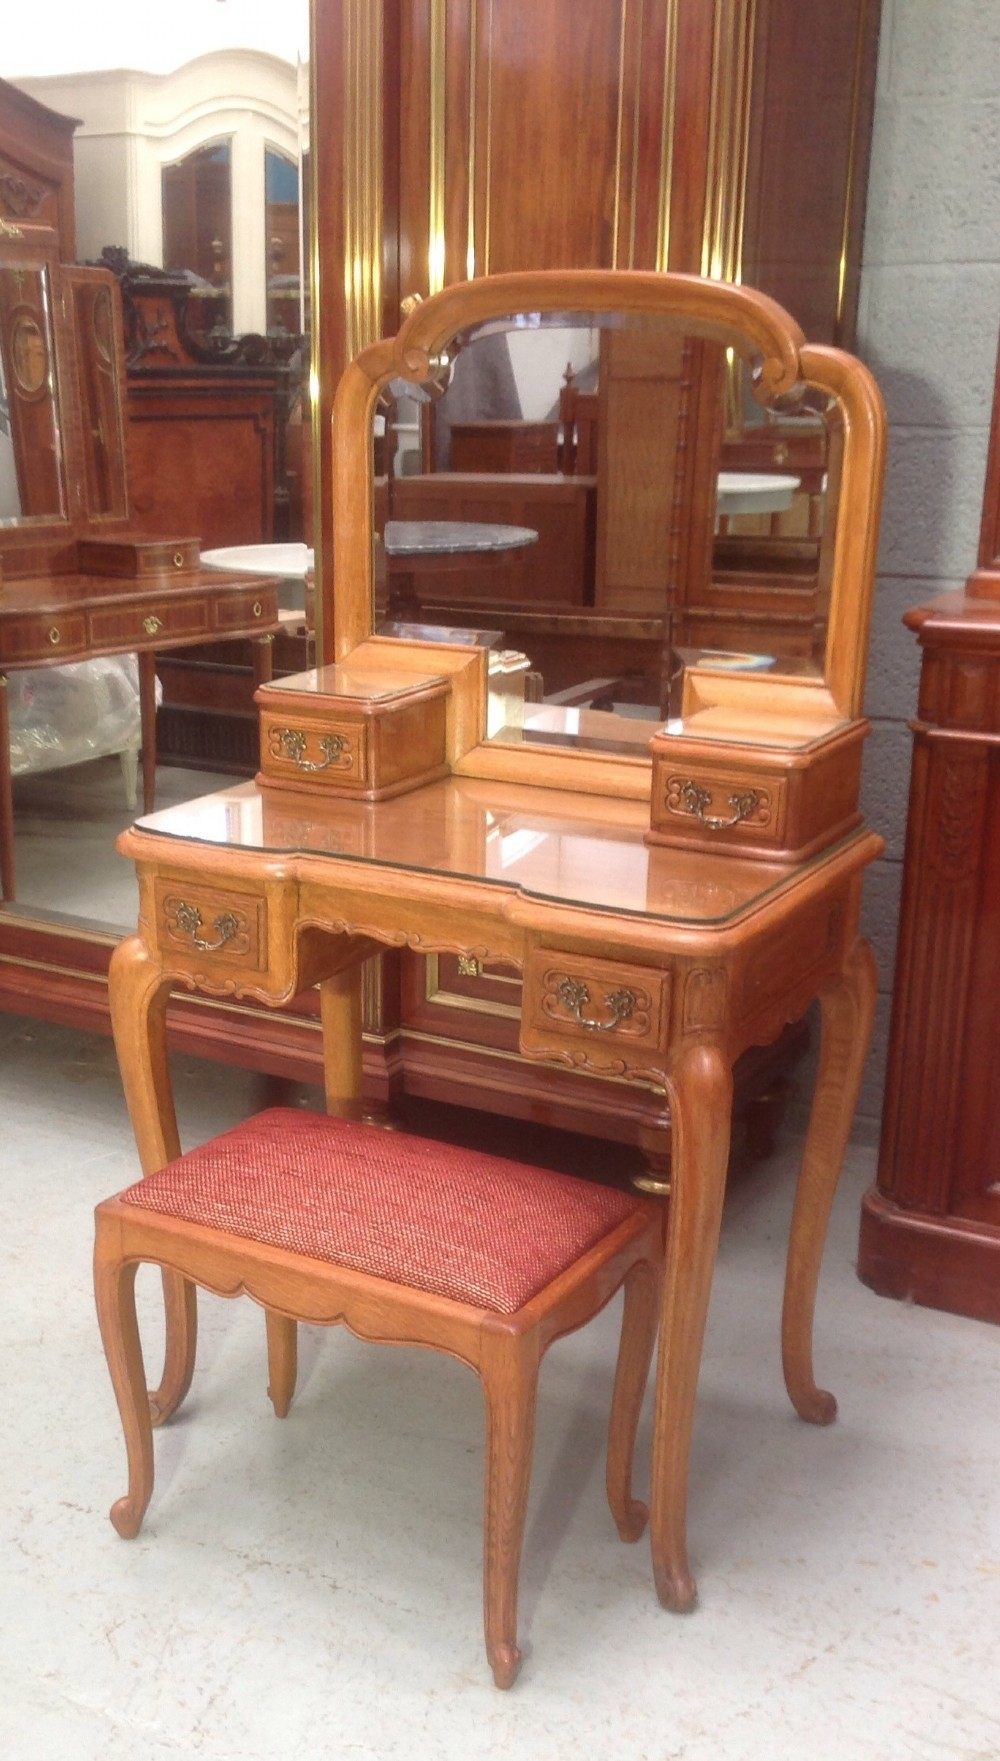 Dressing Table Chairs And Stools: Carved Oak French Dressing Table And Stool